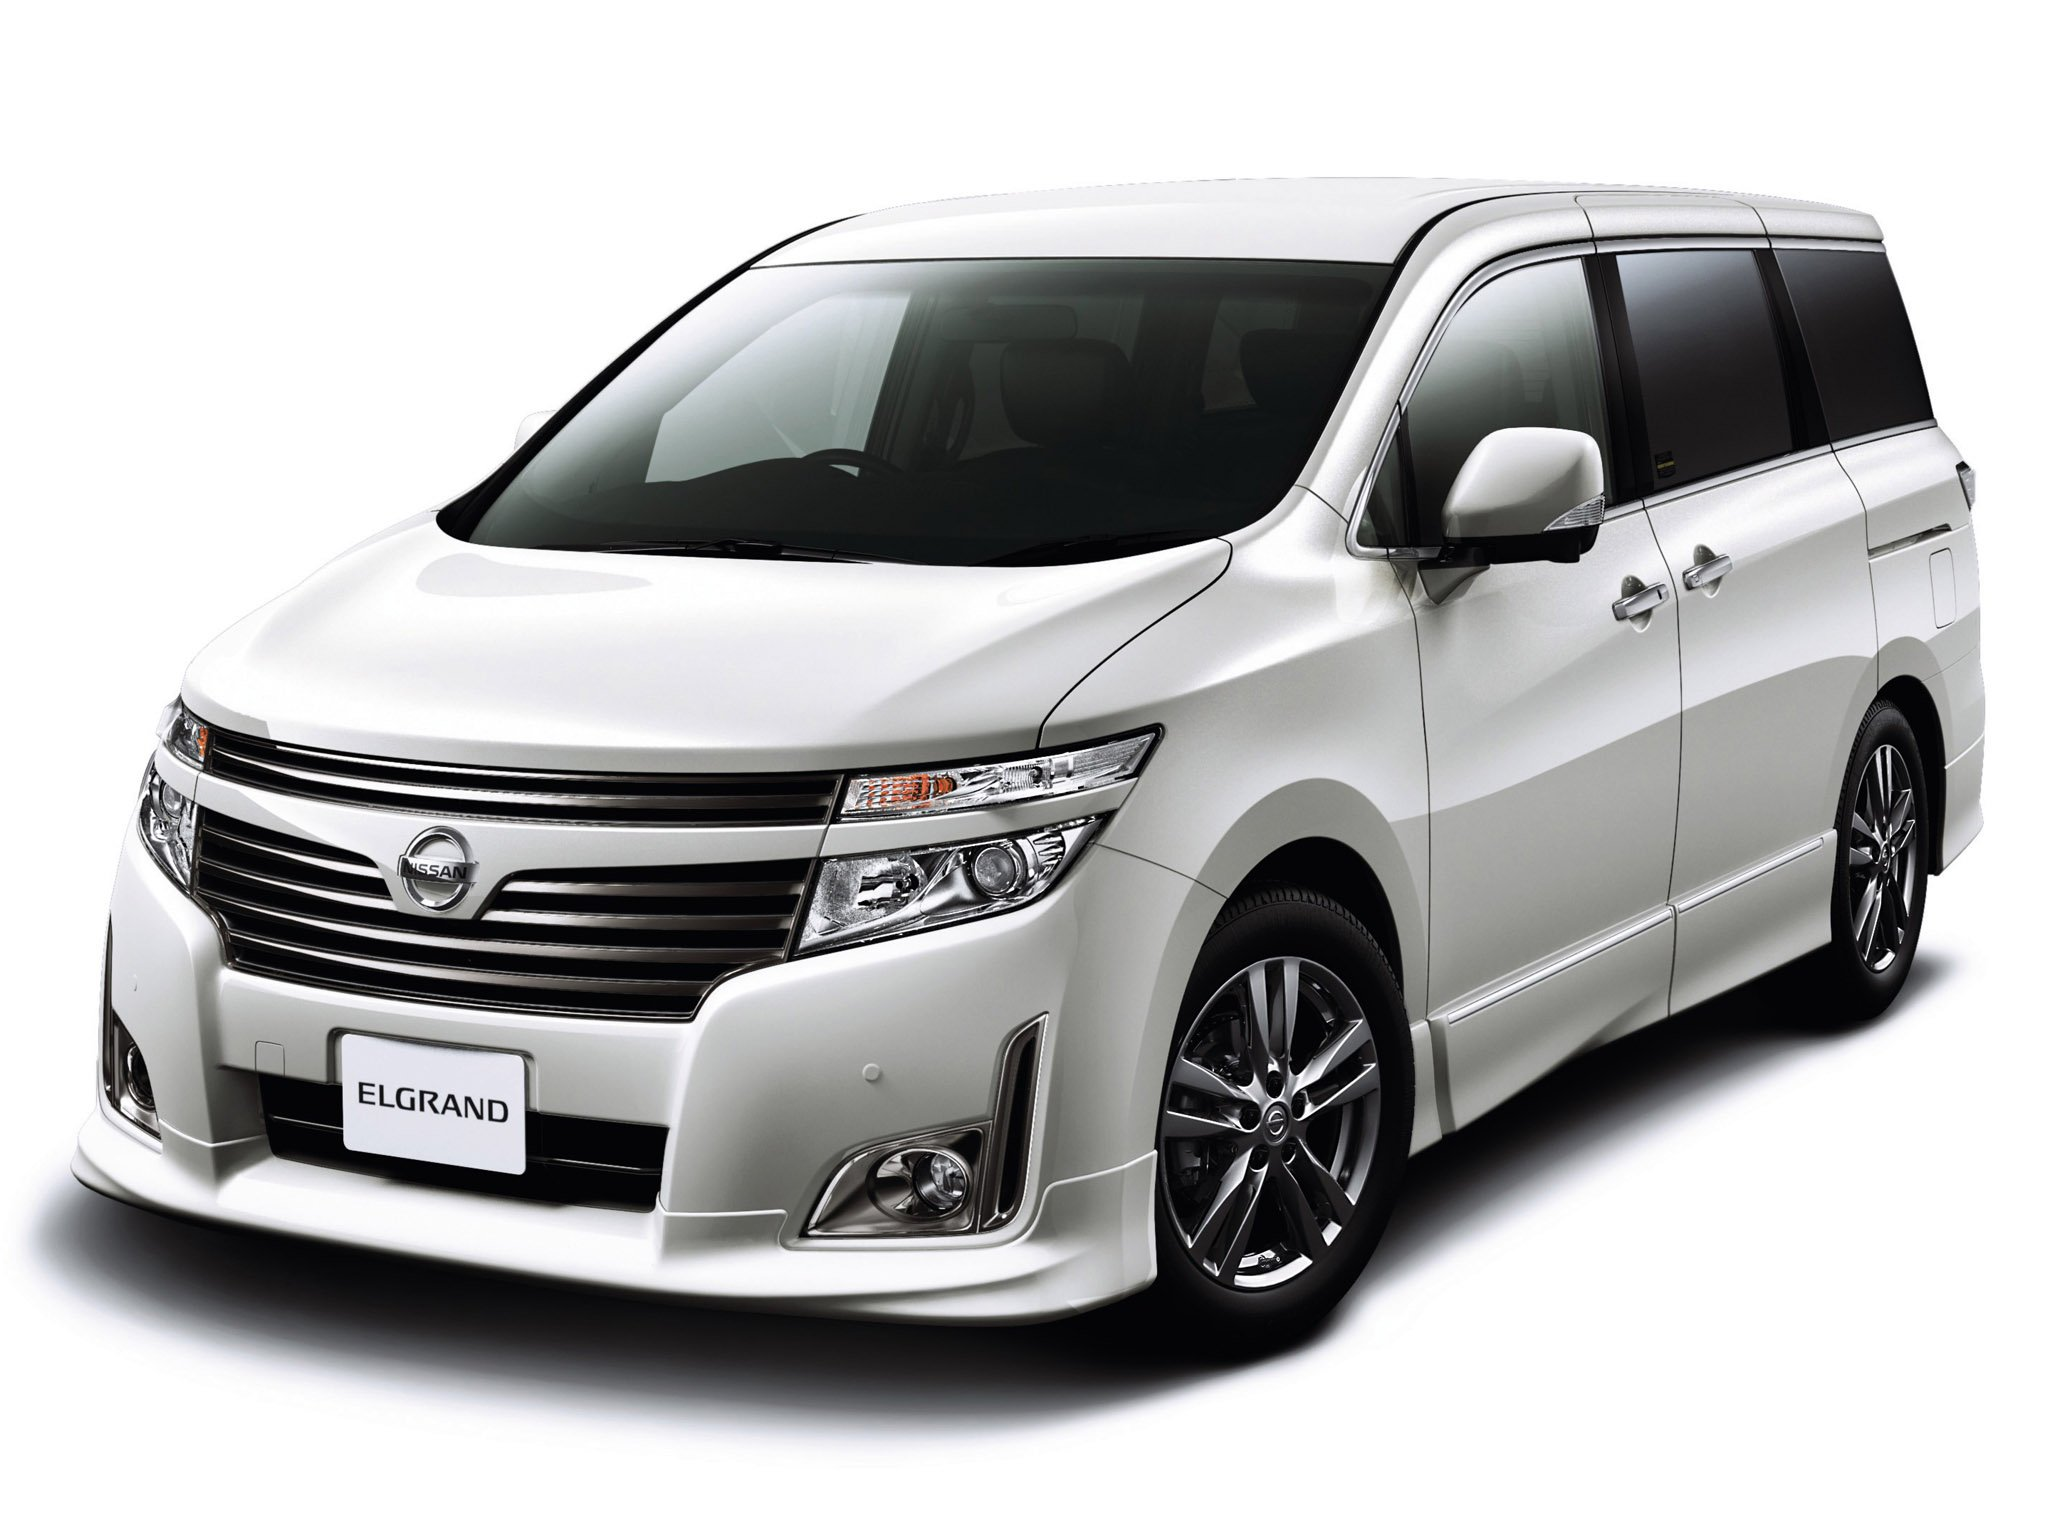 Pictures of nissan elgrand #7